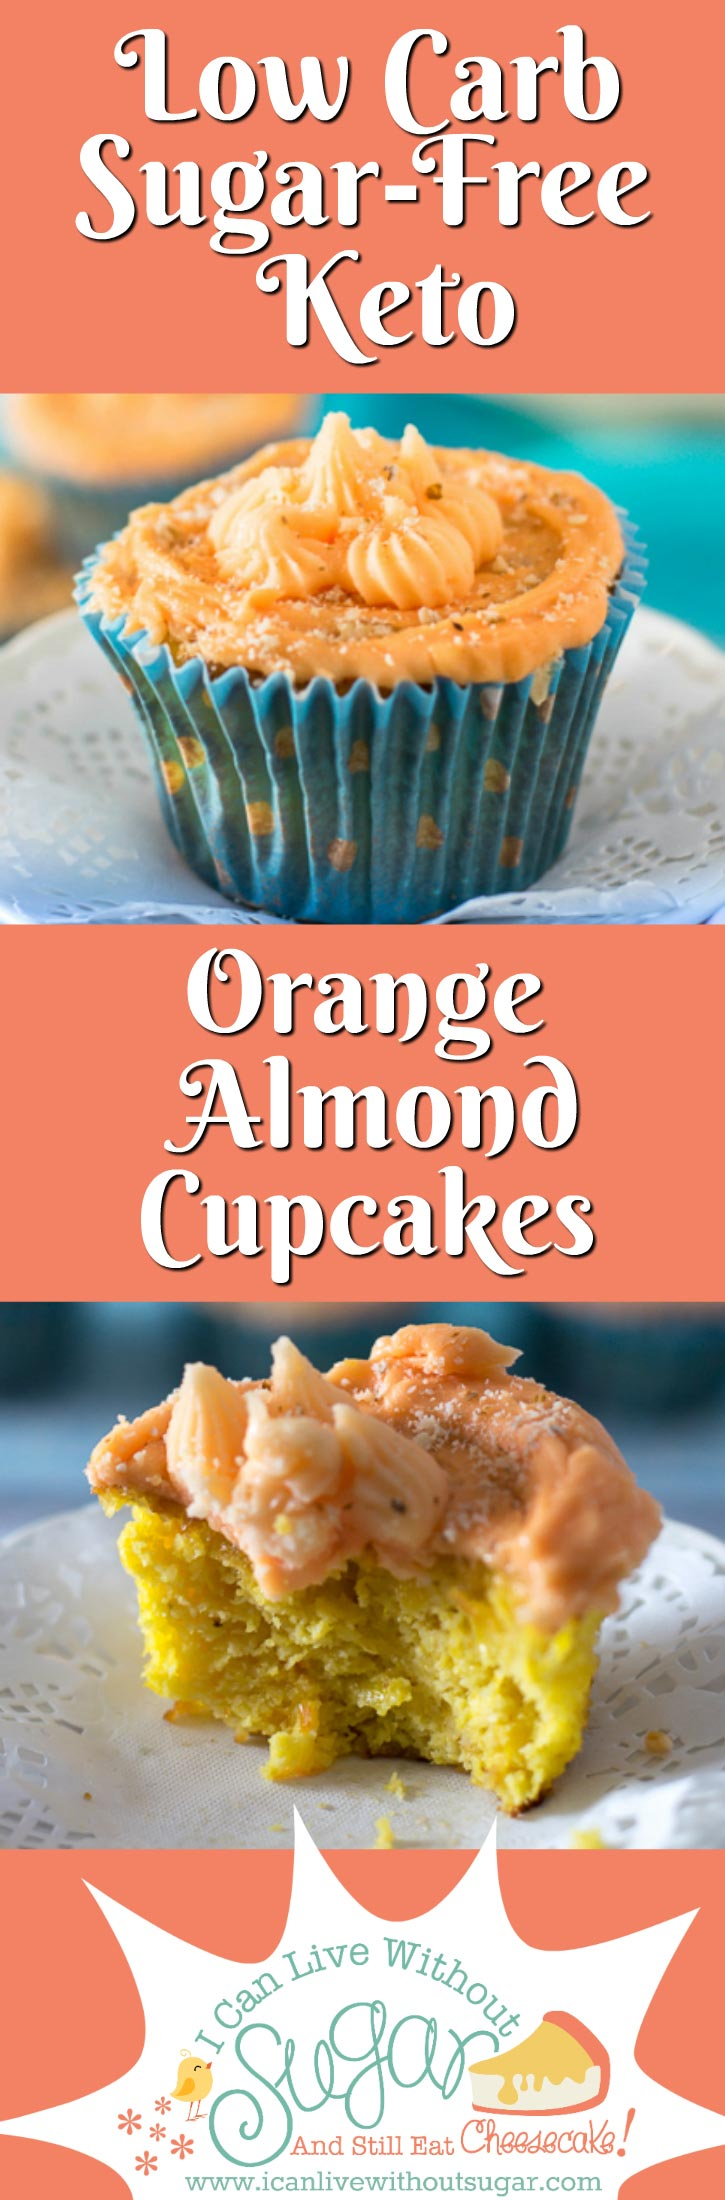 These cute little orange almond cupcakes taste as good as they look. The recipe is low carb, sugar-free, keto, and grain free too. Just the thing for a healthy treat. They also keep really well, up to a week in the fridge! Perfect for office parties and family get-togethers. Enjoy!